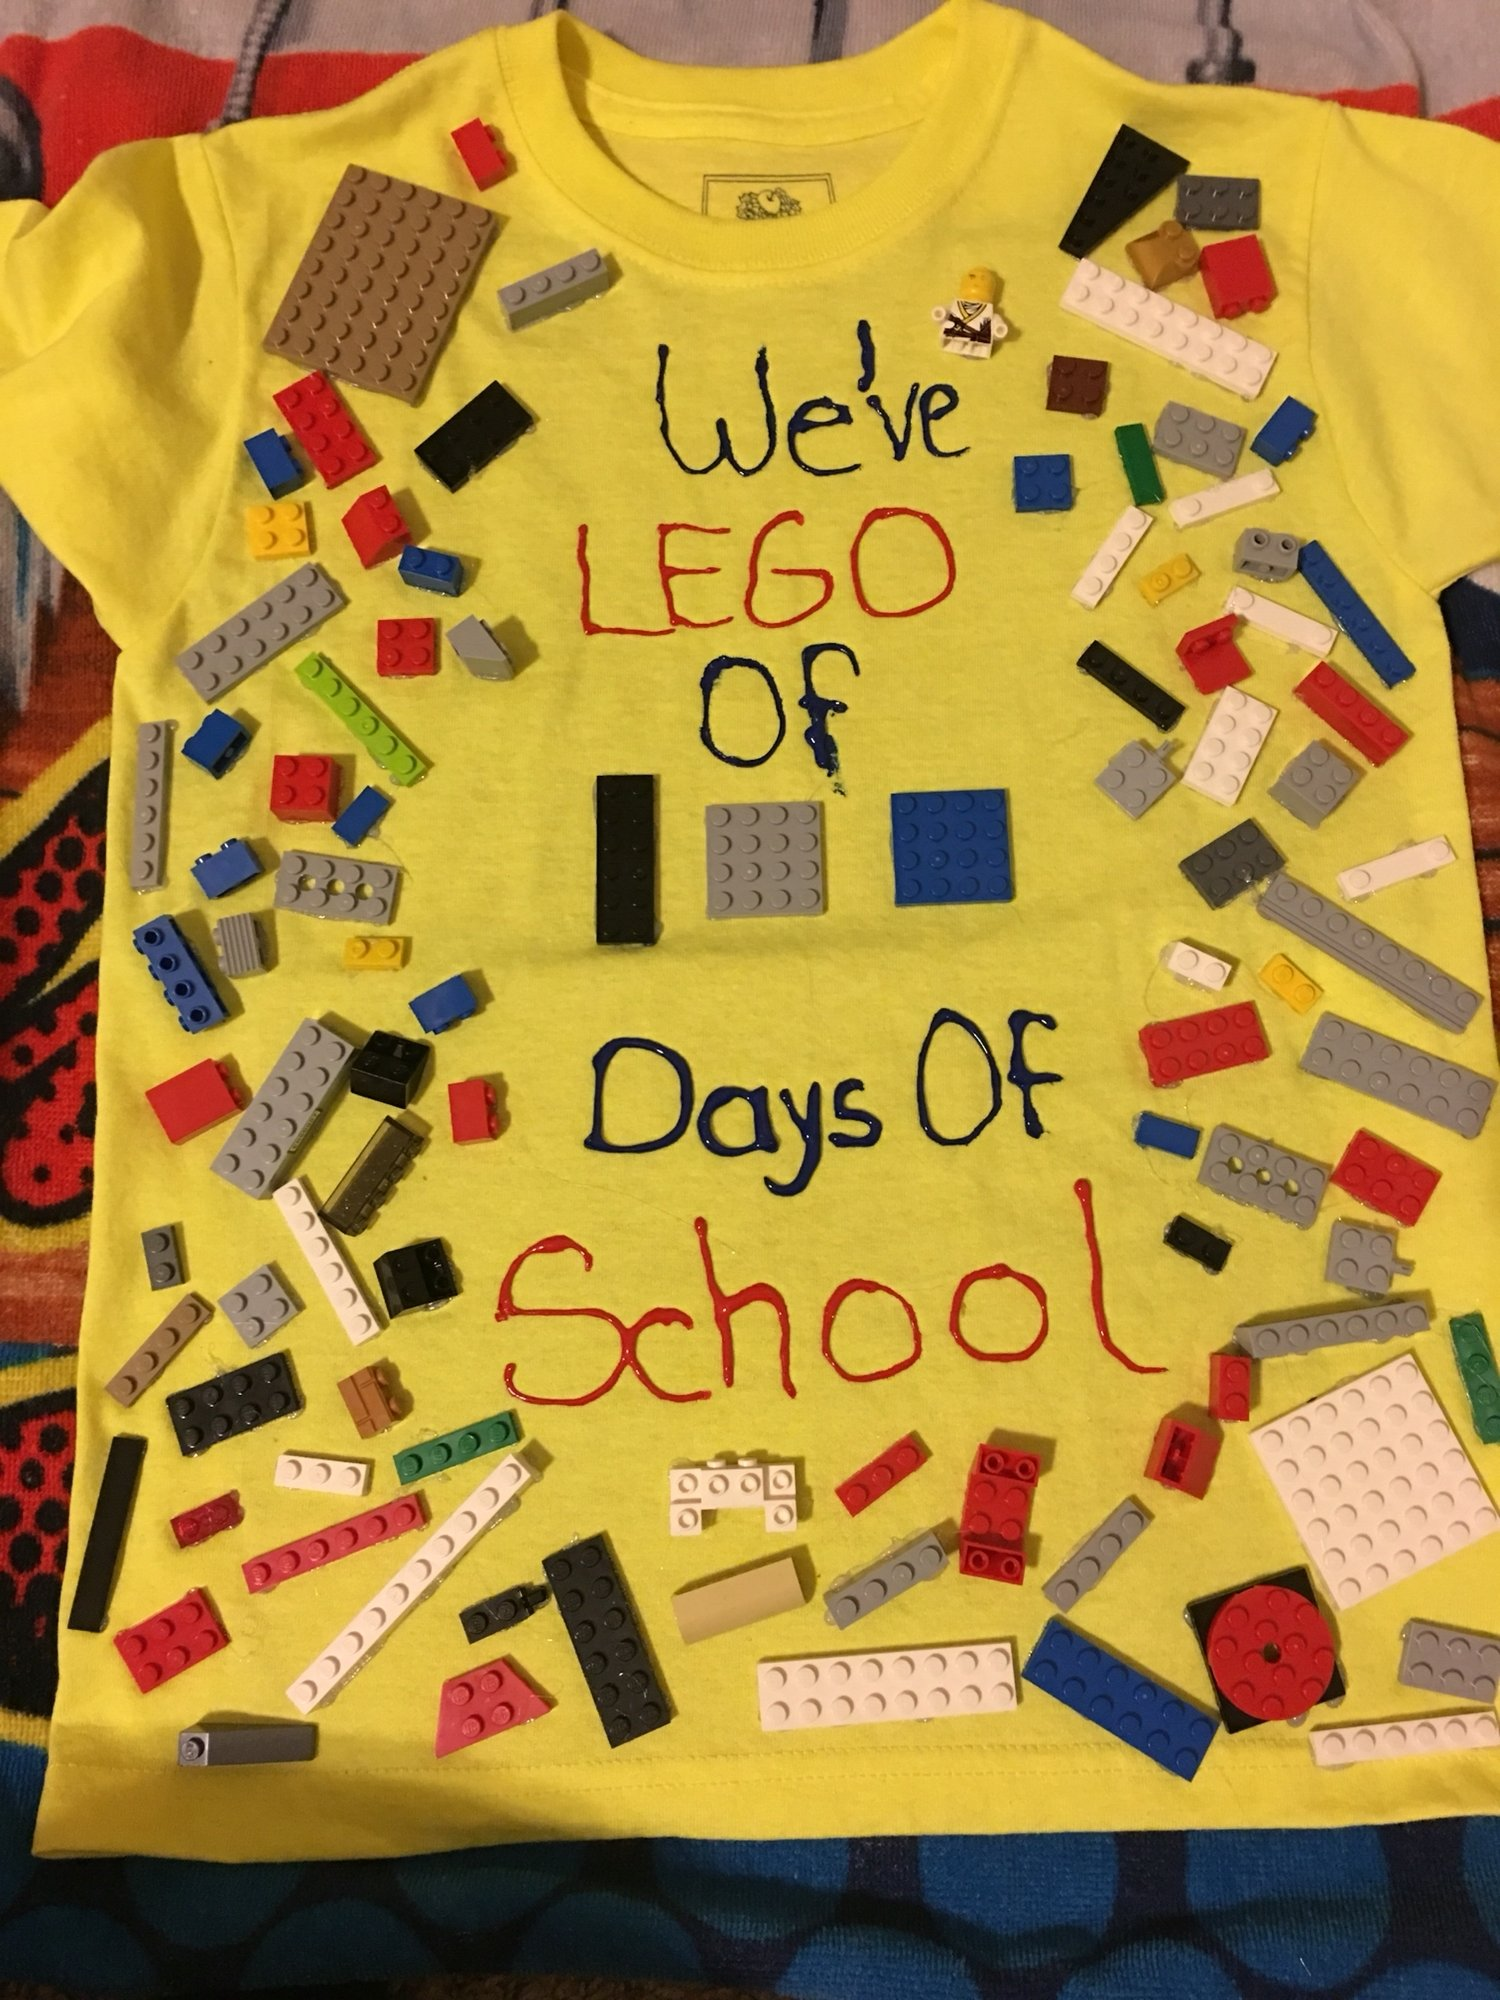 10 Perfect Ideas For 100 Days Of School Project weve lego 100 days of school 100th day t shirt my stuff 2 2021